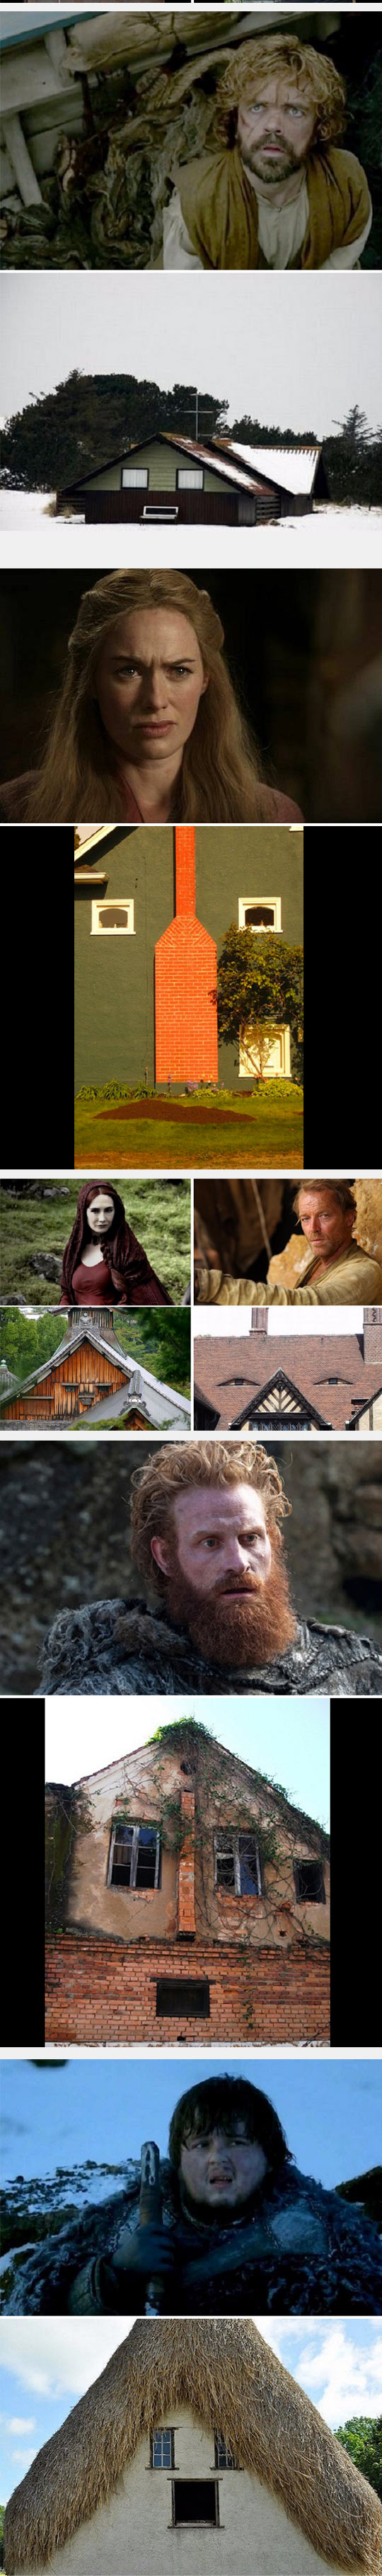 2funny-got-characters-look-like-houses-tyrion